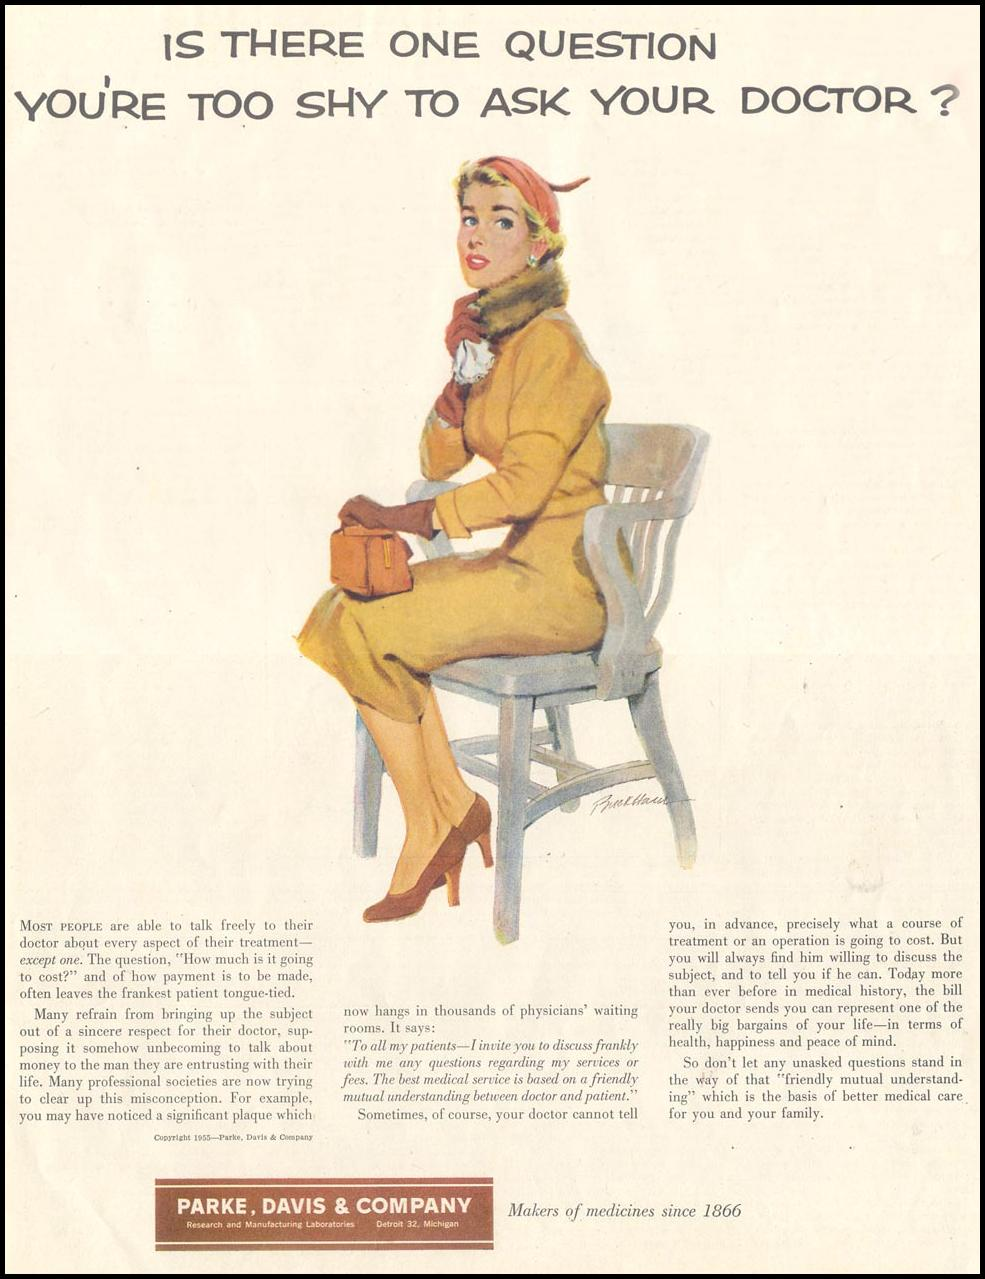 PHARMACEUTICALS SATURDAY EVENING POST 12/10/1955 p. 129